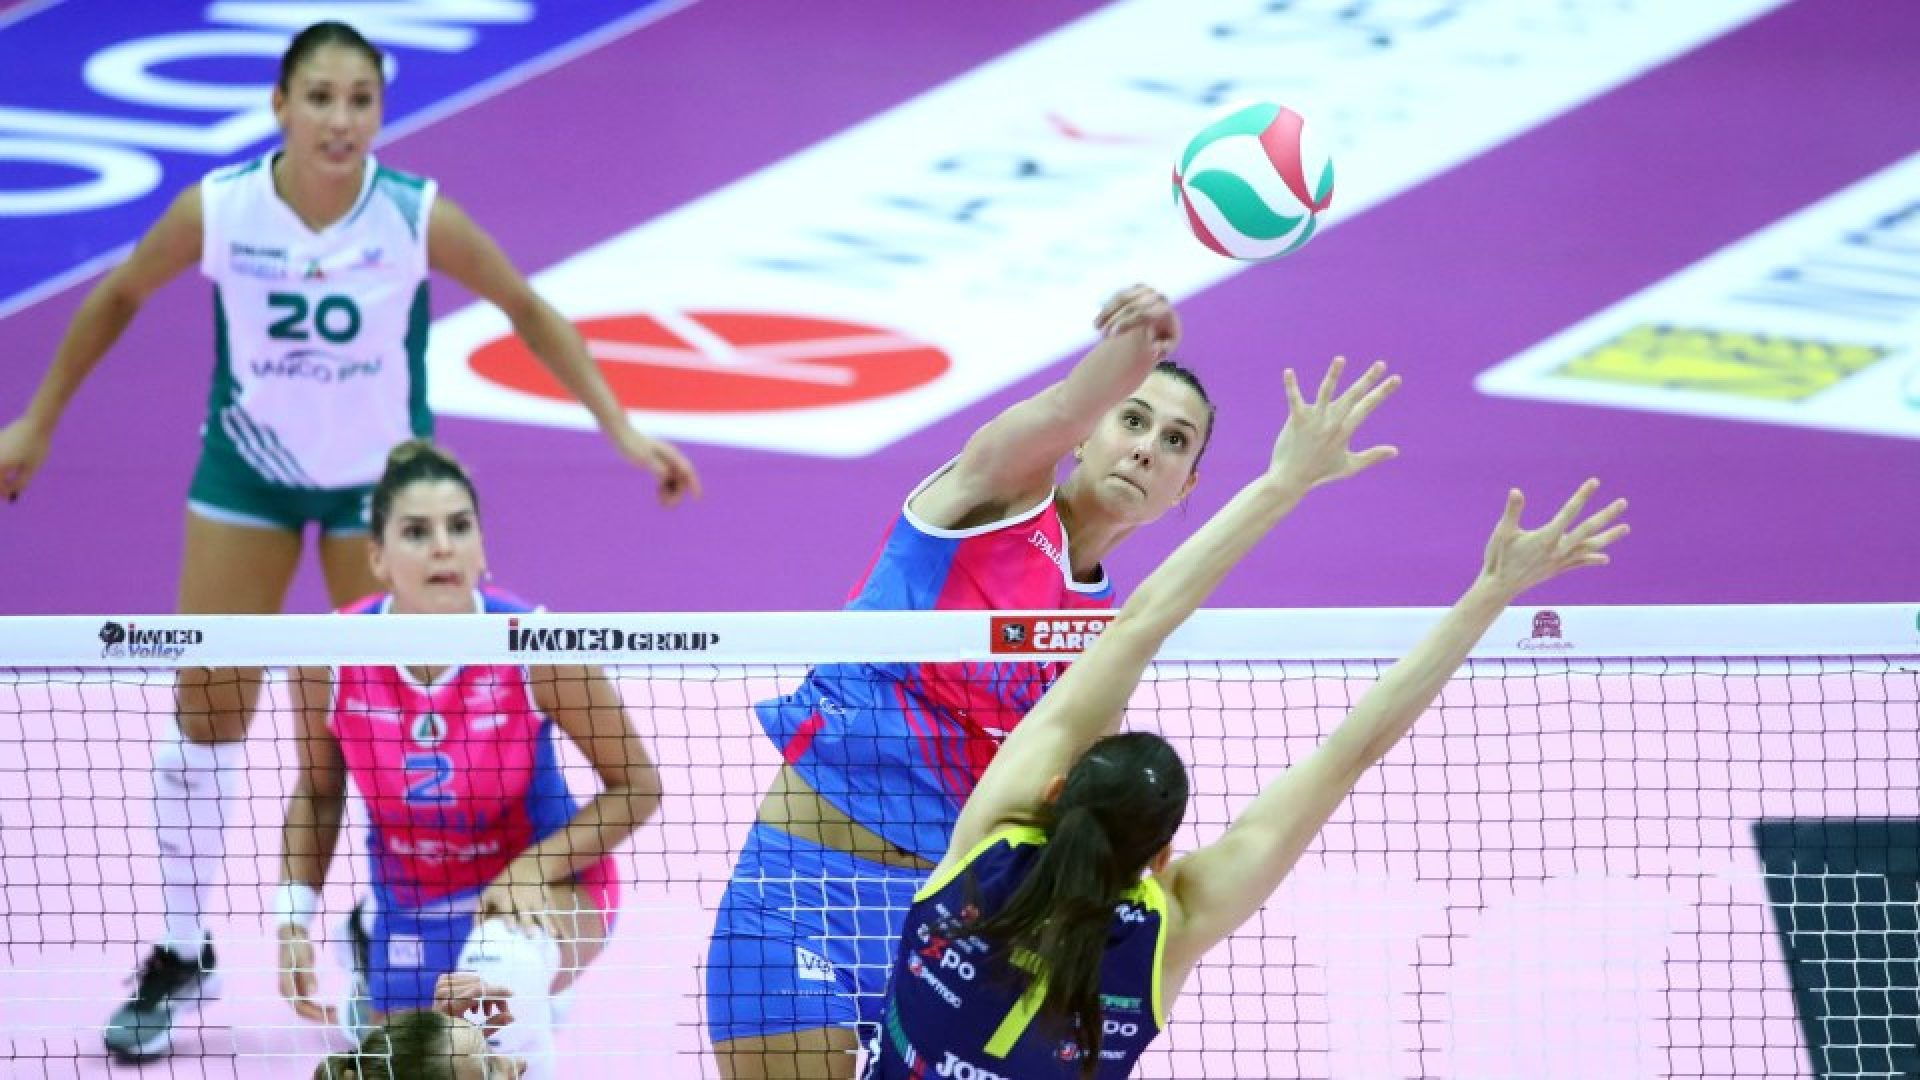 IMOCO VOLLEY CONEGLIANO - VERO VOLLEY MONZA